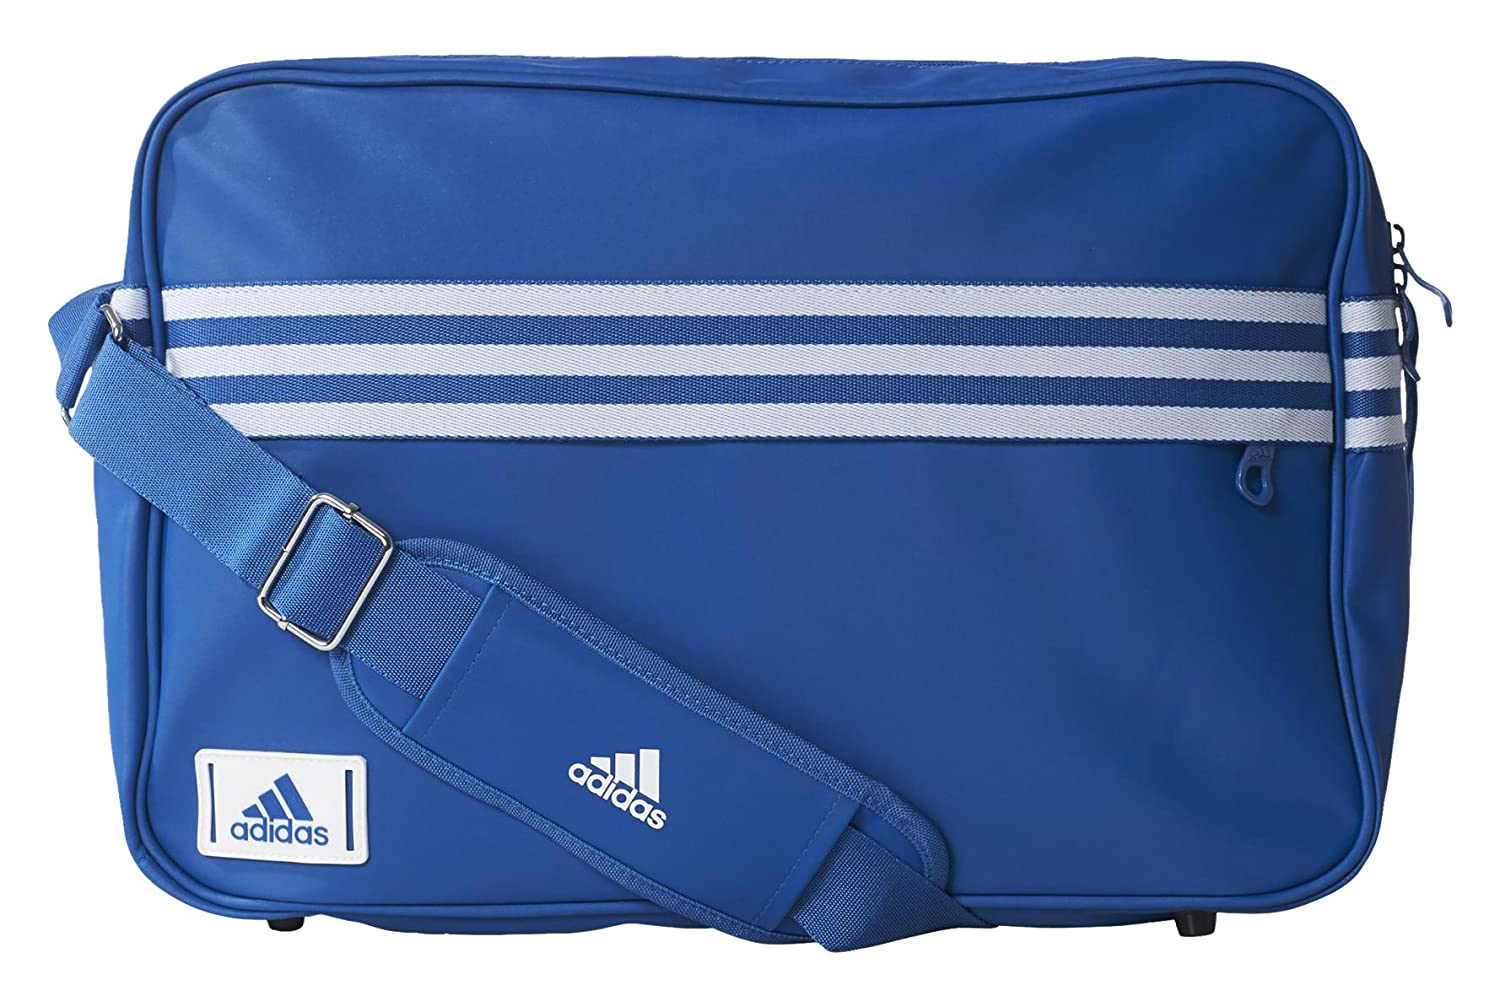 cf3ba8d251 ADIDAS 3 stripe Enamel messenger   shoulder bag  blue   Amazon.co.uk   Sports   Outdoors